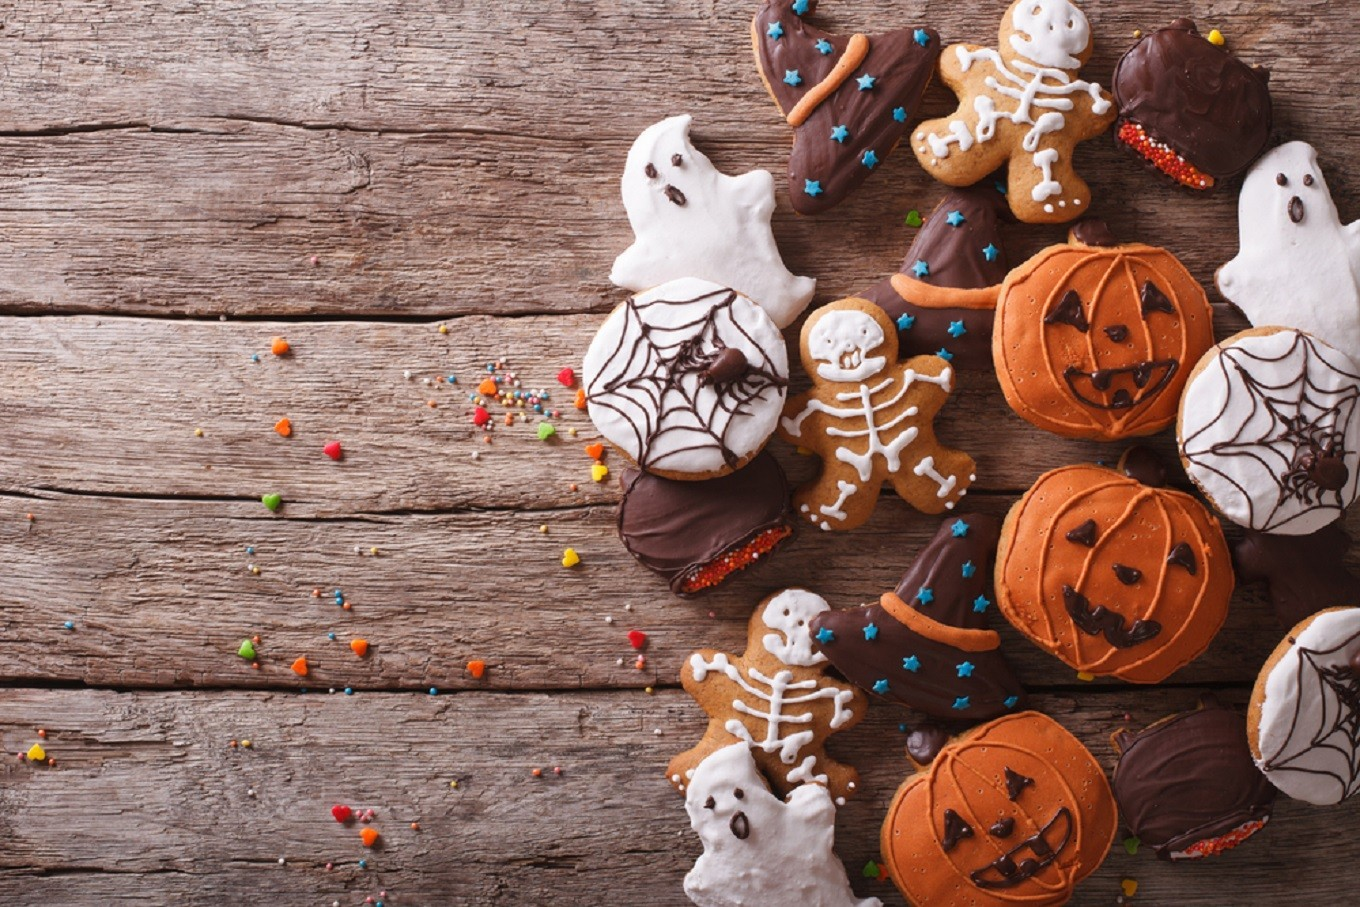 Three places to celebrate Halloween in Jakarta